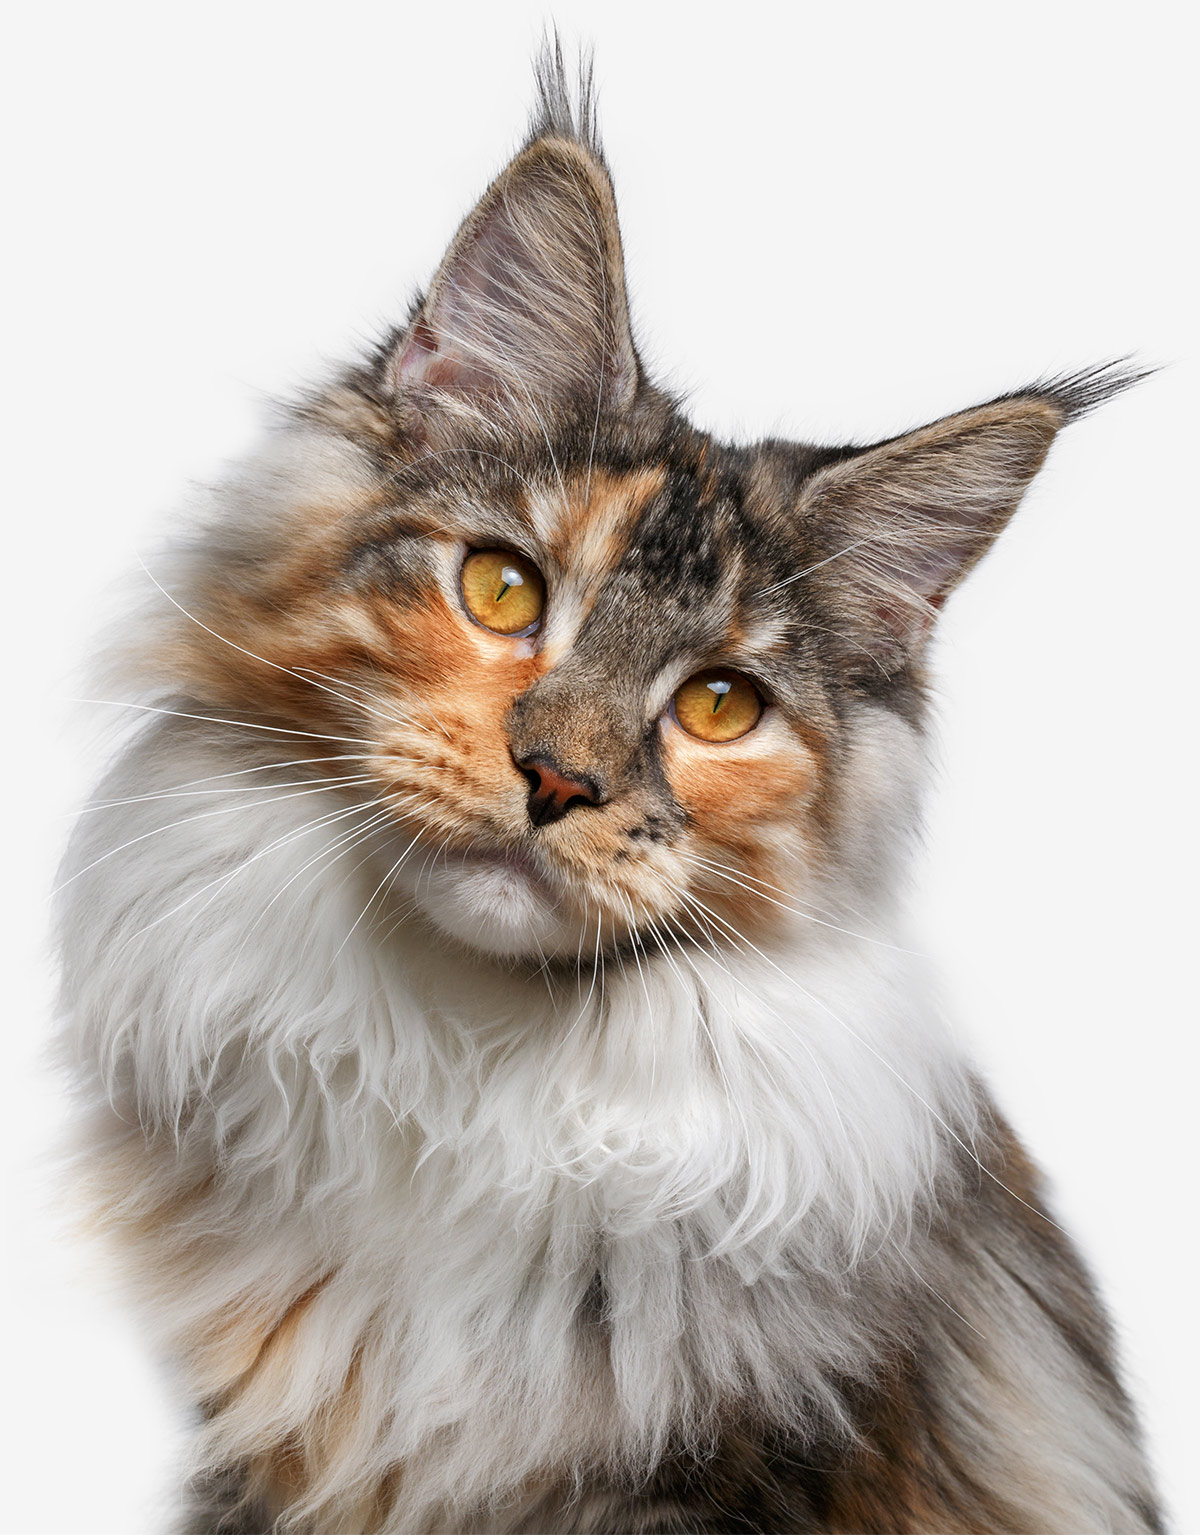 Check Out Our Beautiful Gallery Of Pictures Of Maine Coon Cats